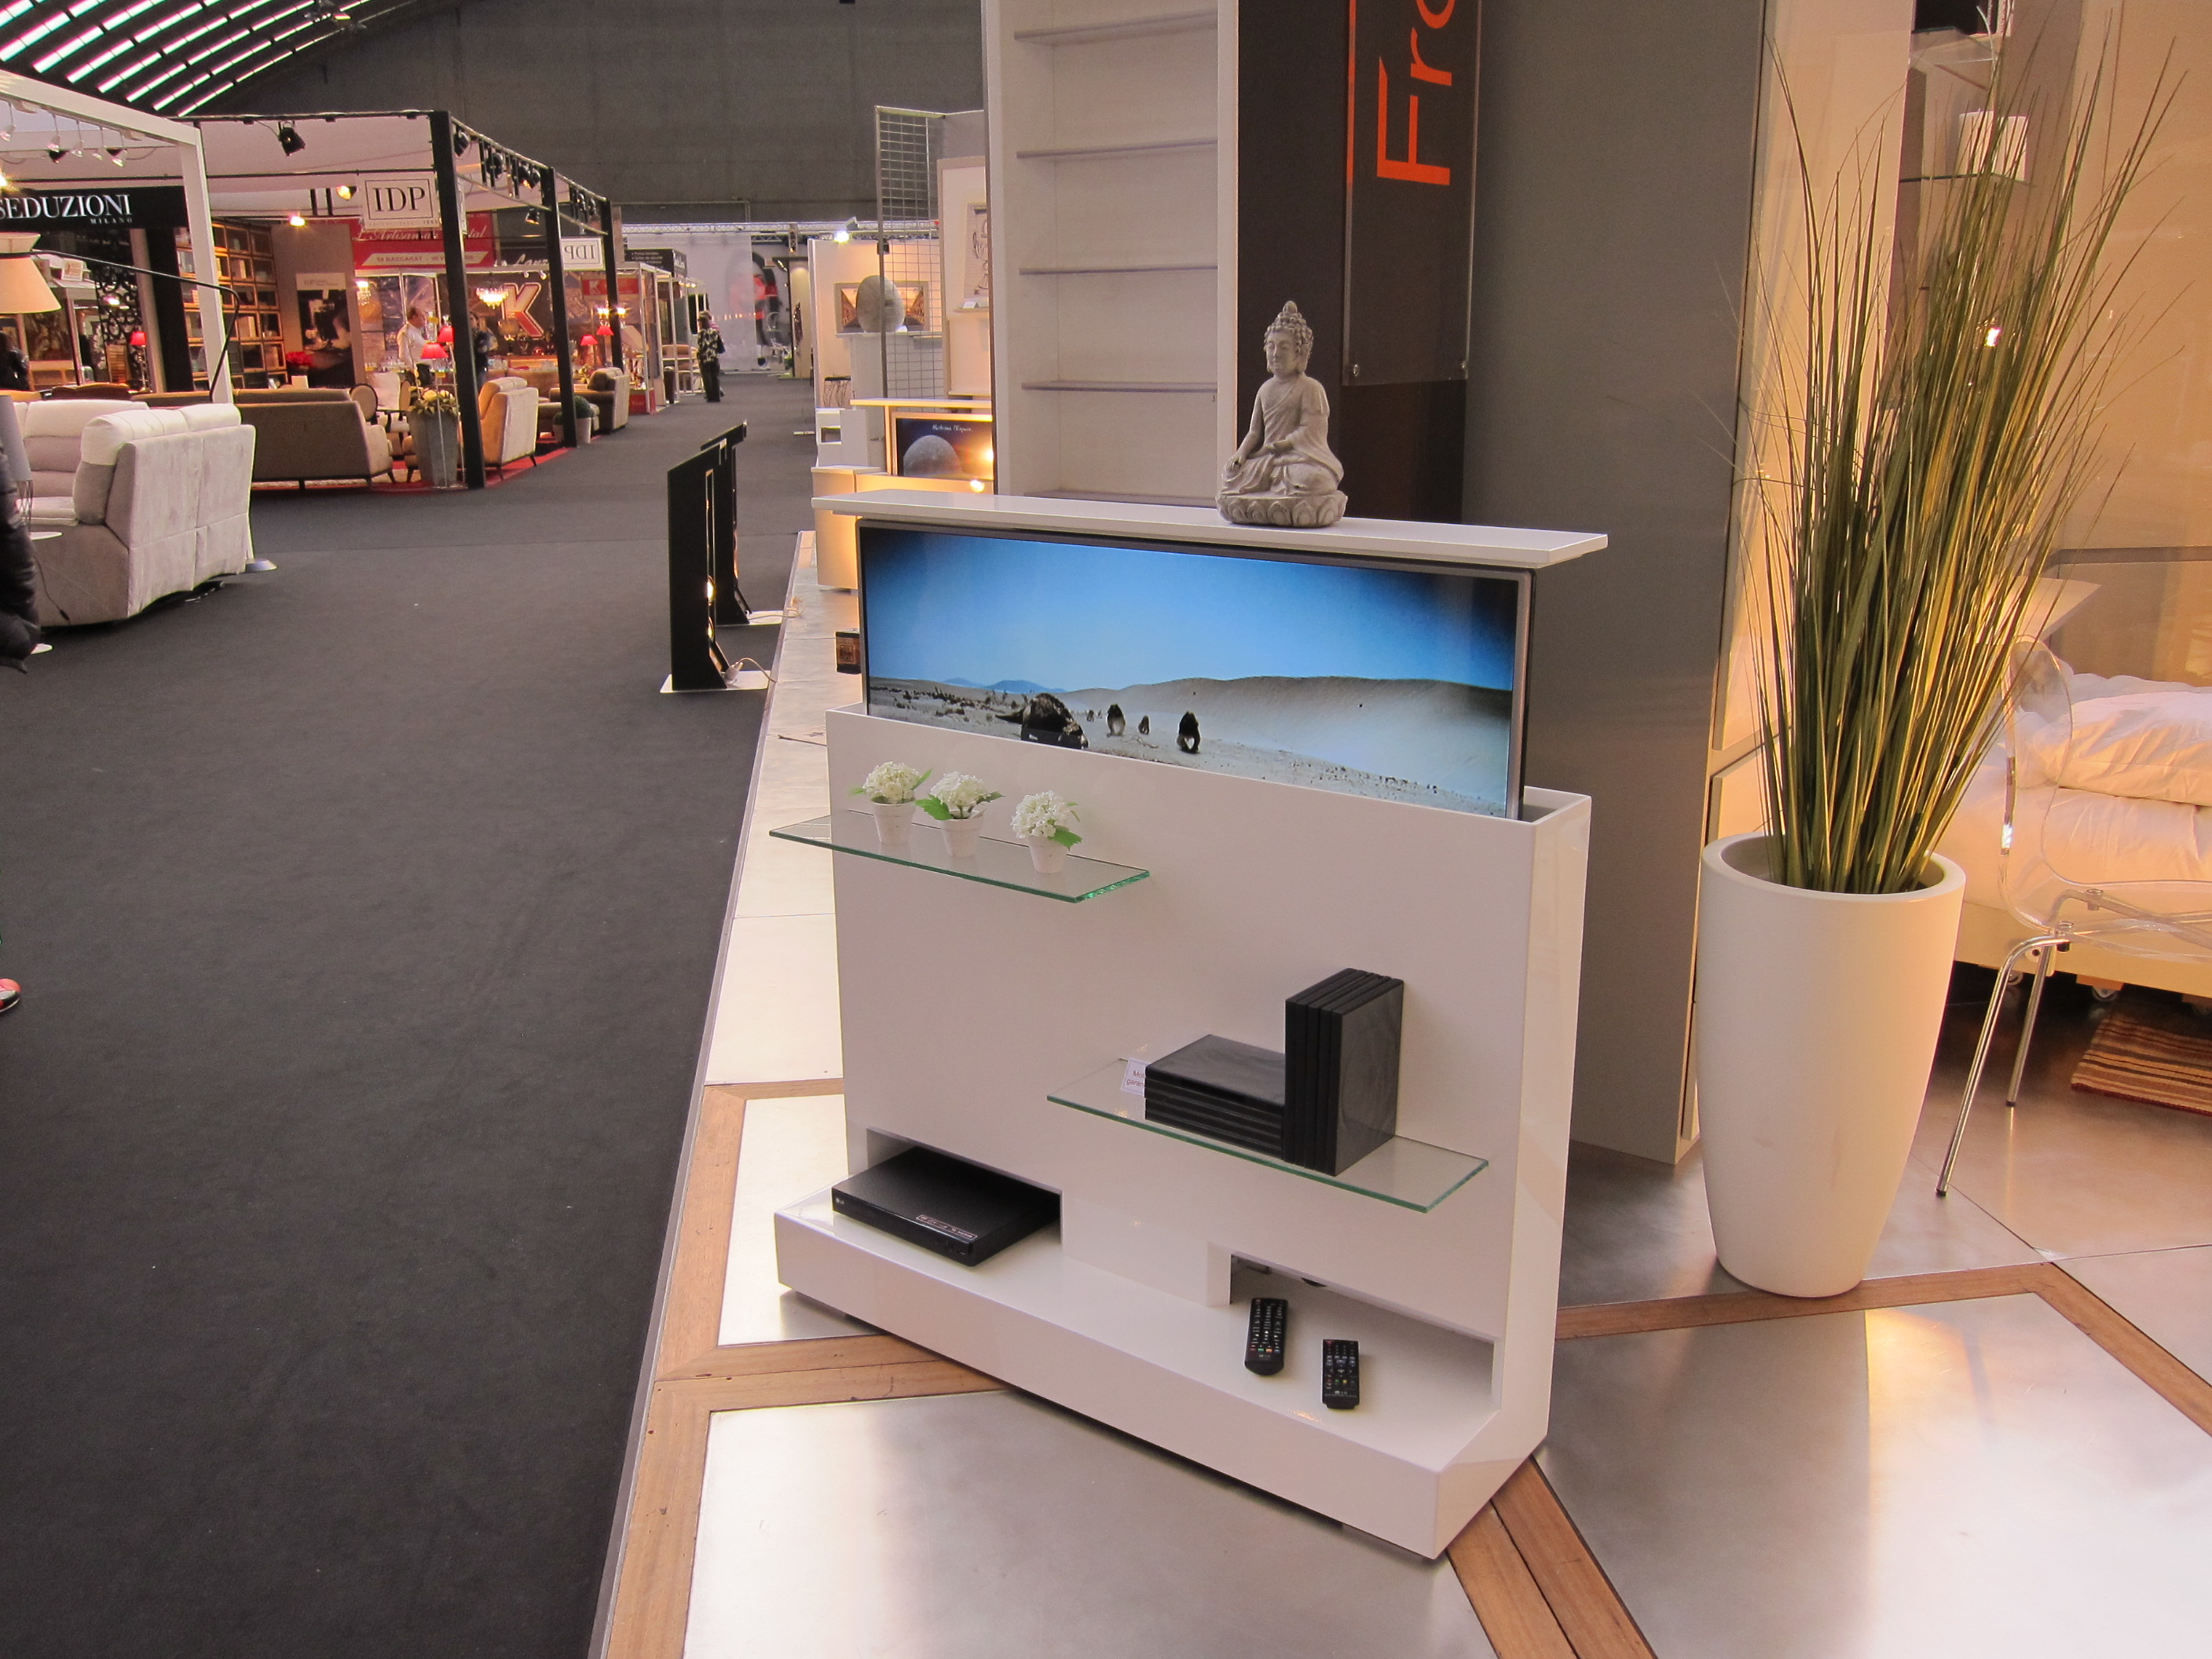 Meuble Tv Ecran Plat Retractable - Le Mobilier Gain De Place Fran Ois Desile[mjhdah]https://www.ueda.fr/wp-content/uploads/2017/09/maxresdefault-2.jpg